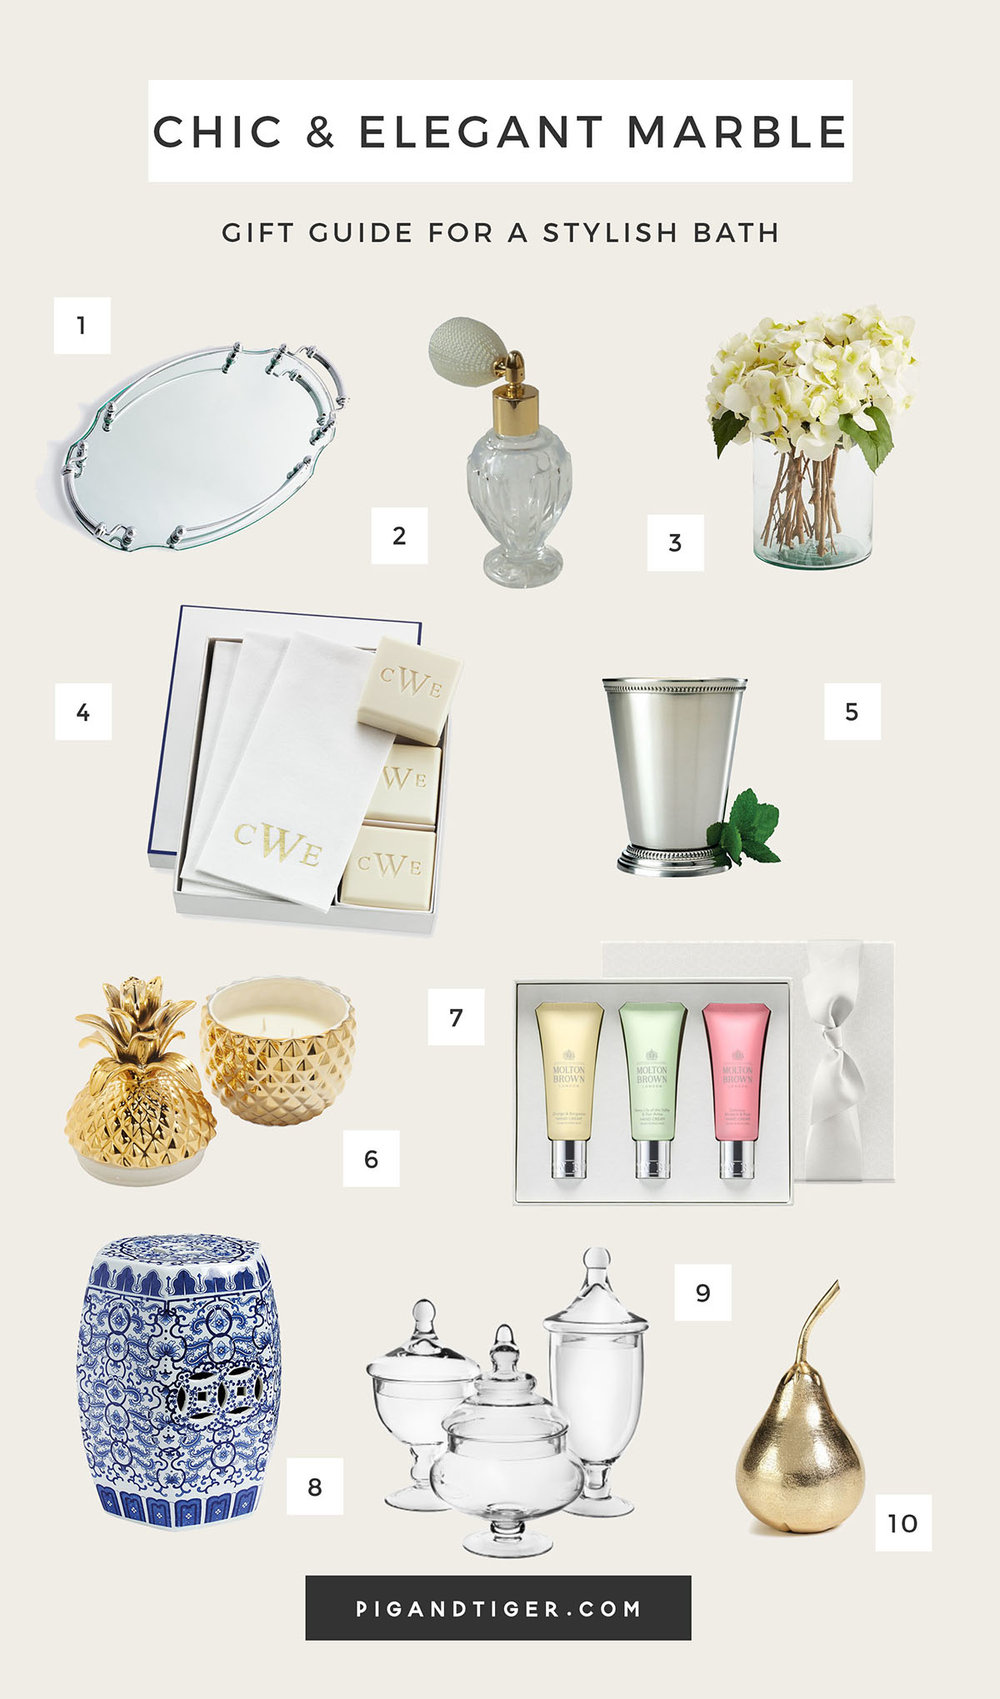 The very best chic and elegant marble bath decor gift guide - CLICK FOR DETAILS